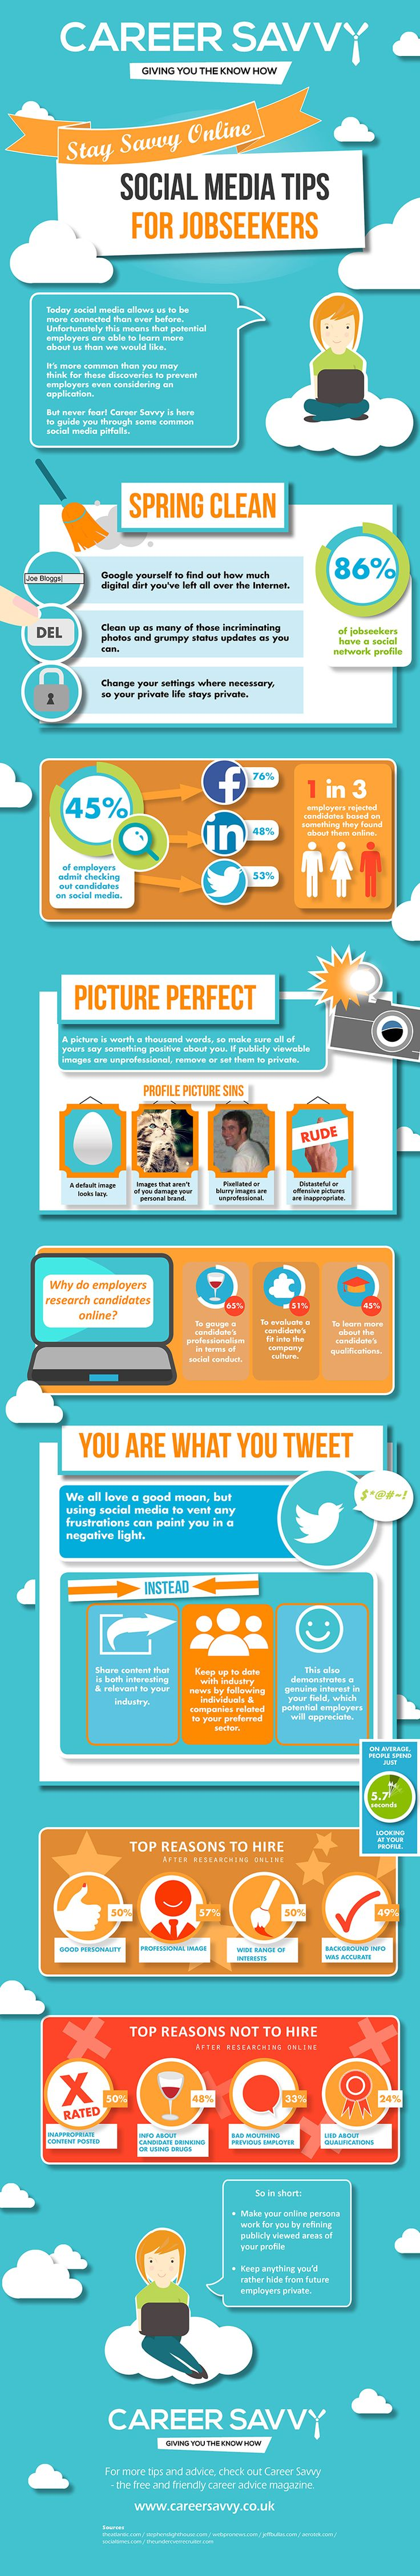 Charming Stay Job Search Savvy With These Social Media Tips #Infographic